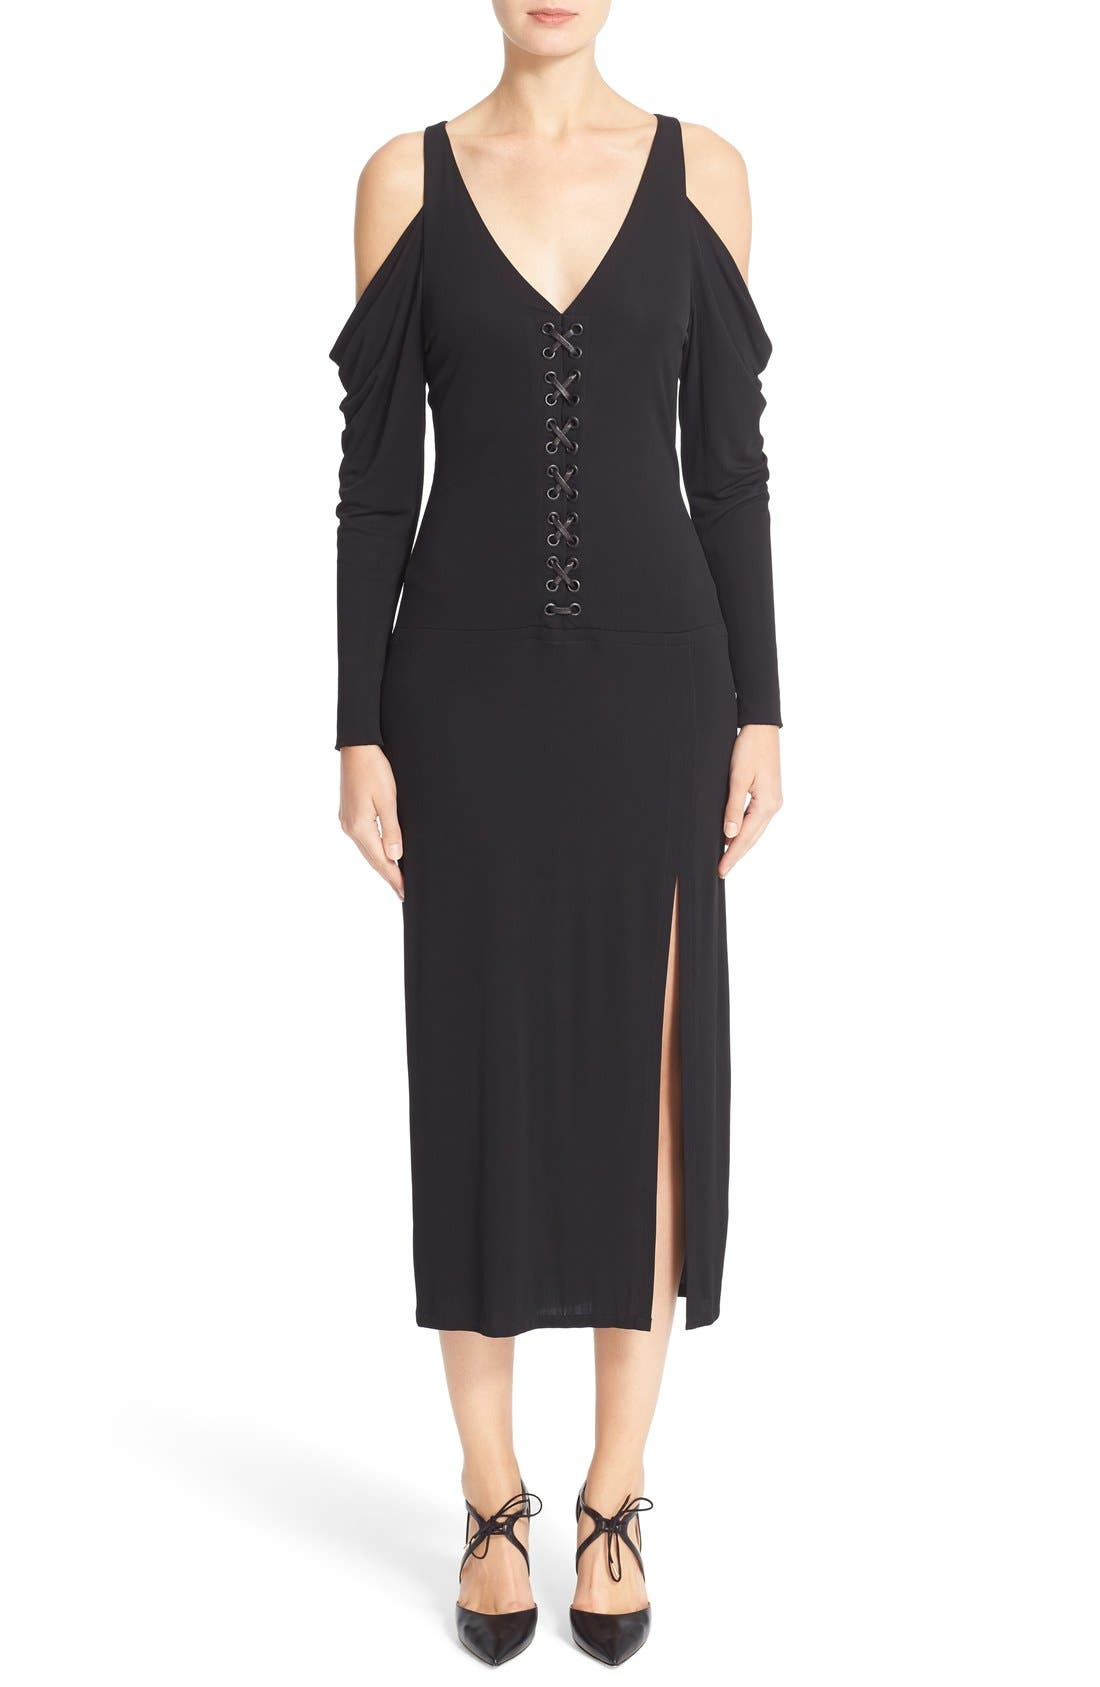 YIGAL AZROUËL Lace-Up Cold Shoulder Matte Jersey Dress